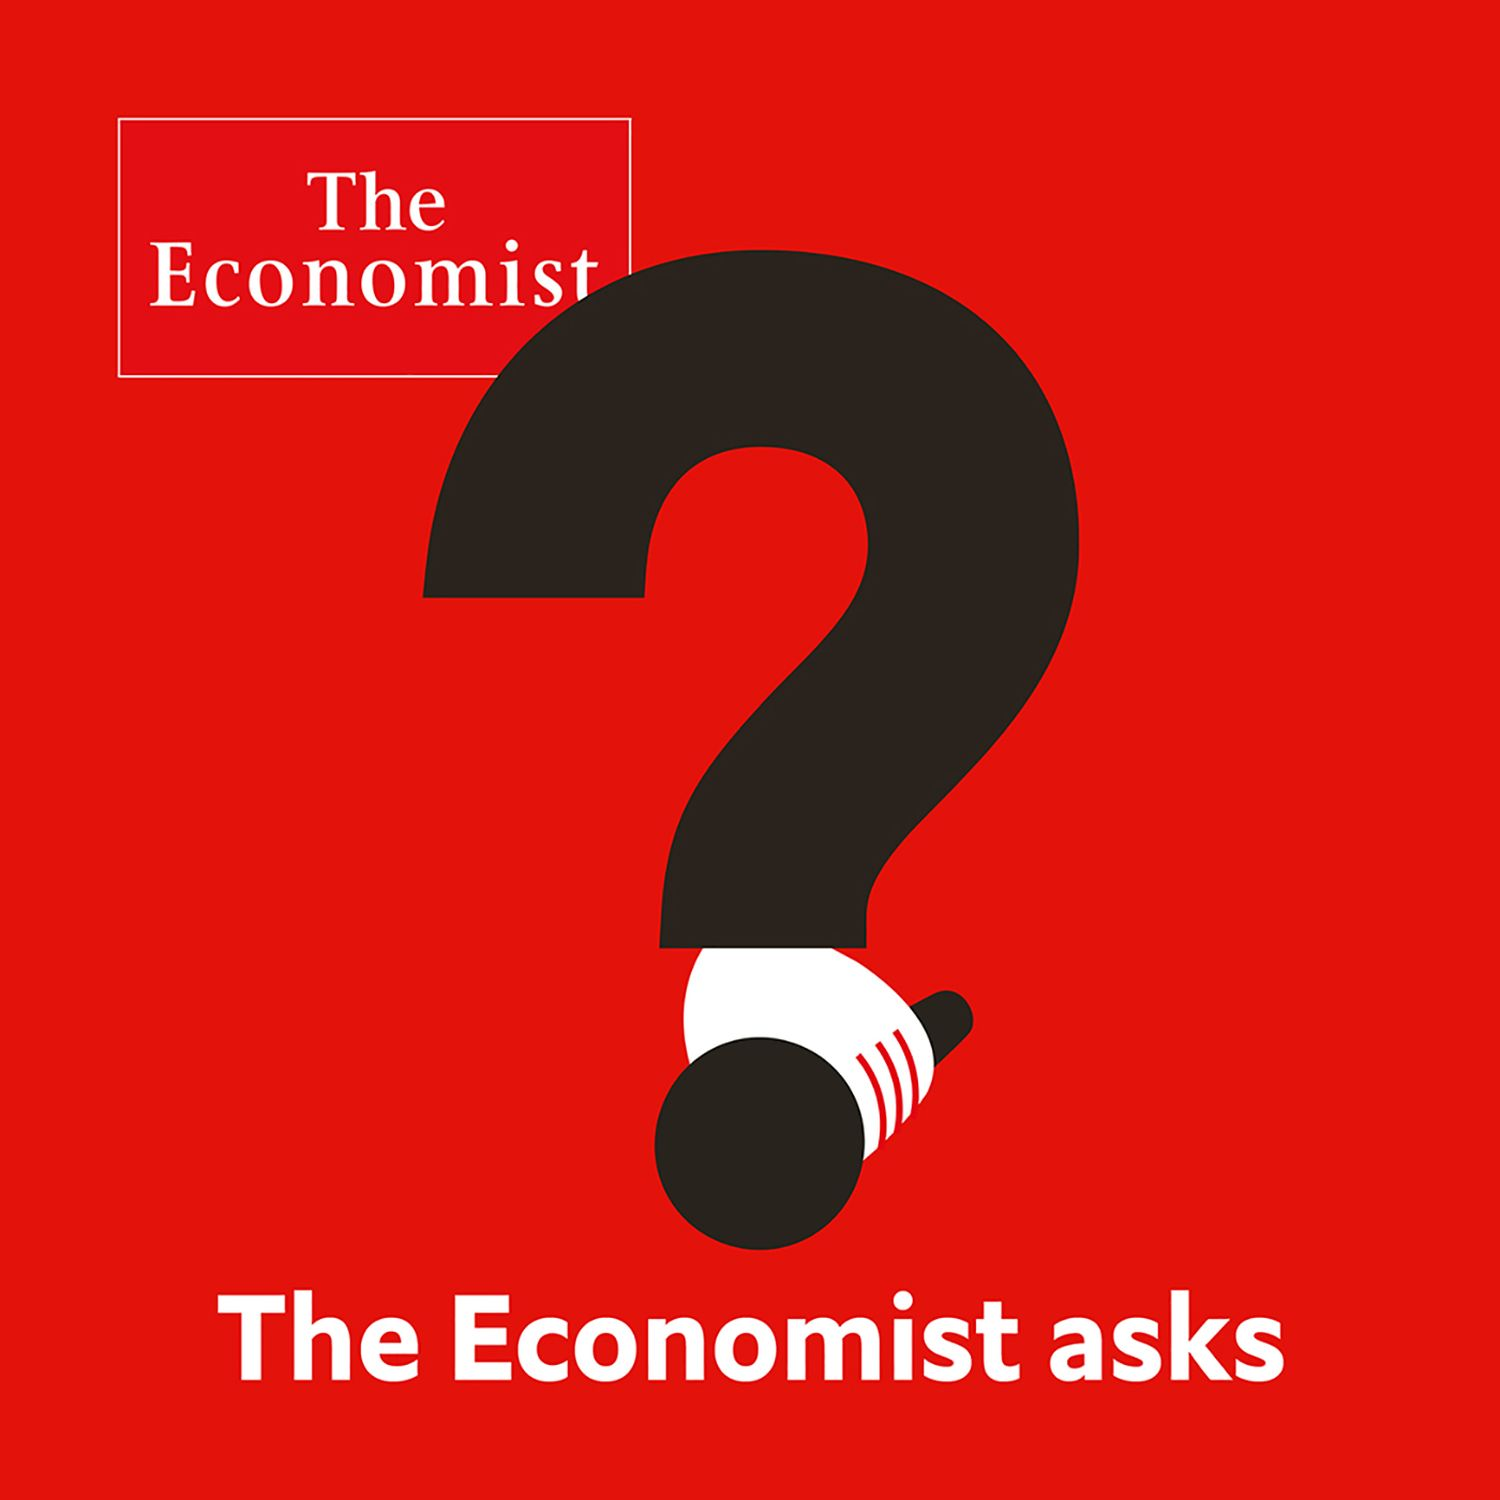 The Economist asks: What would Churchill do in 2018?